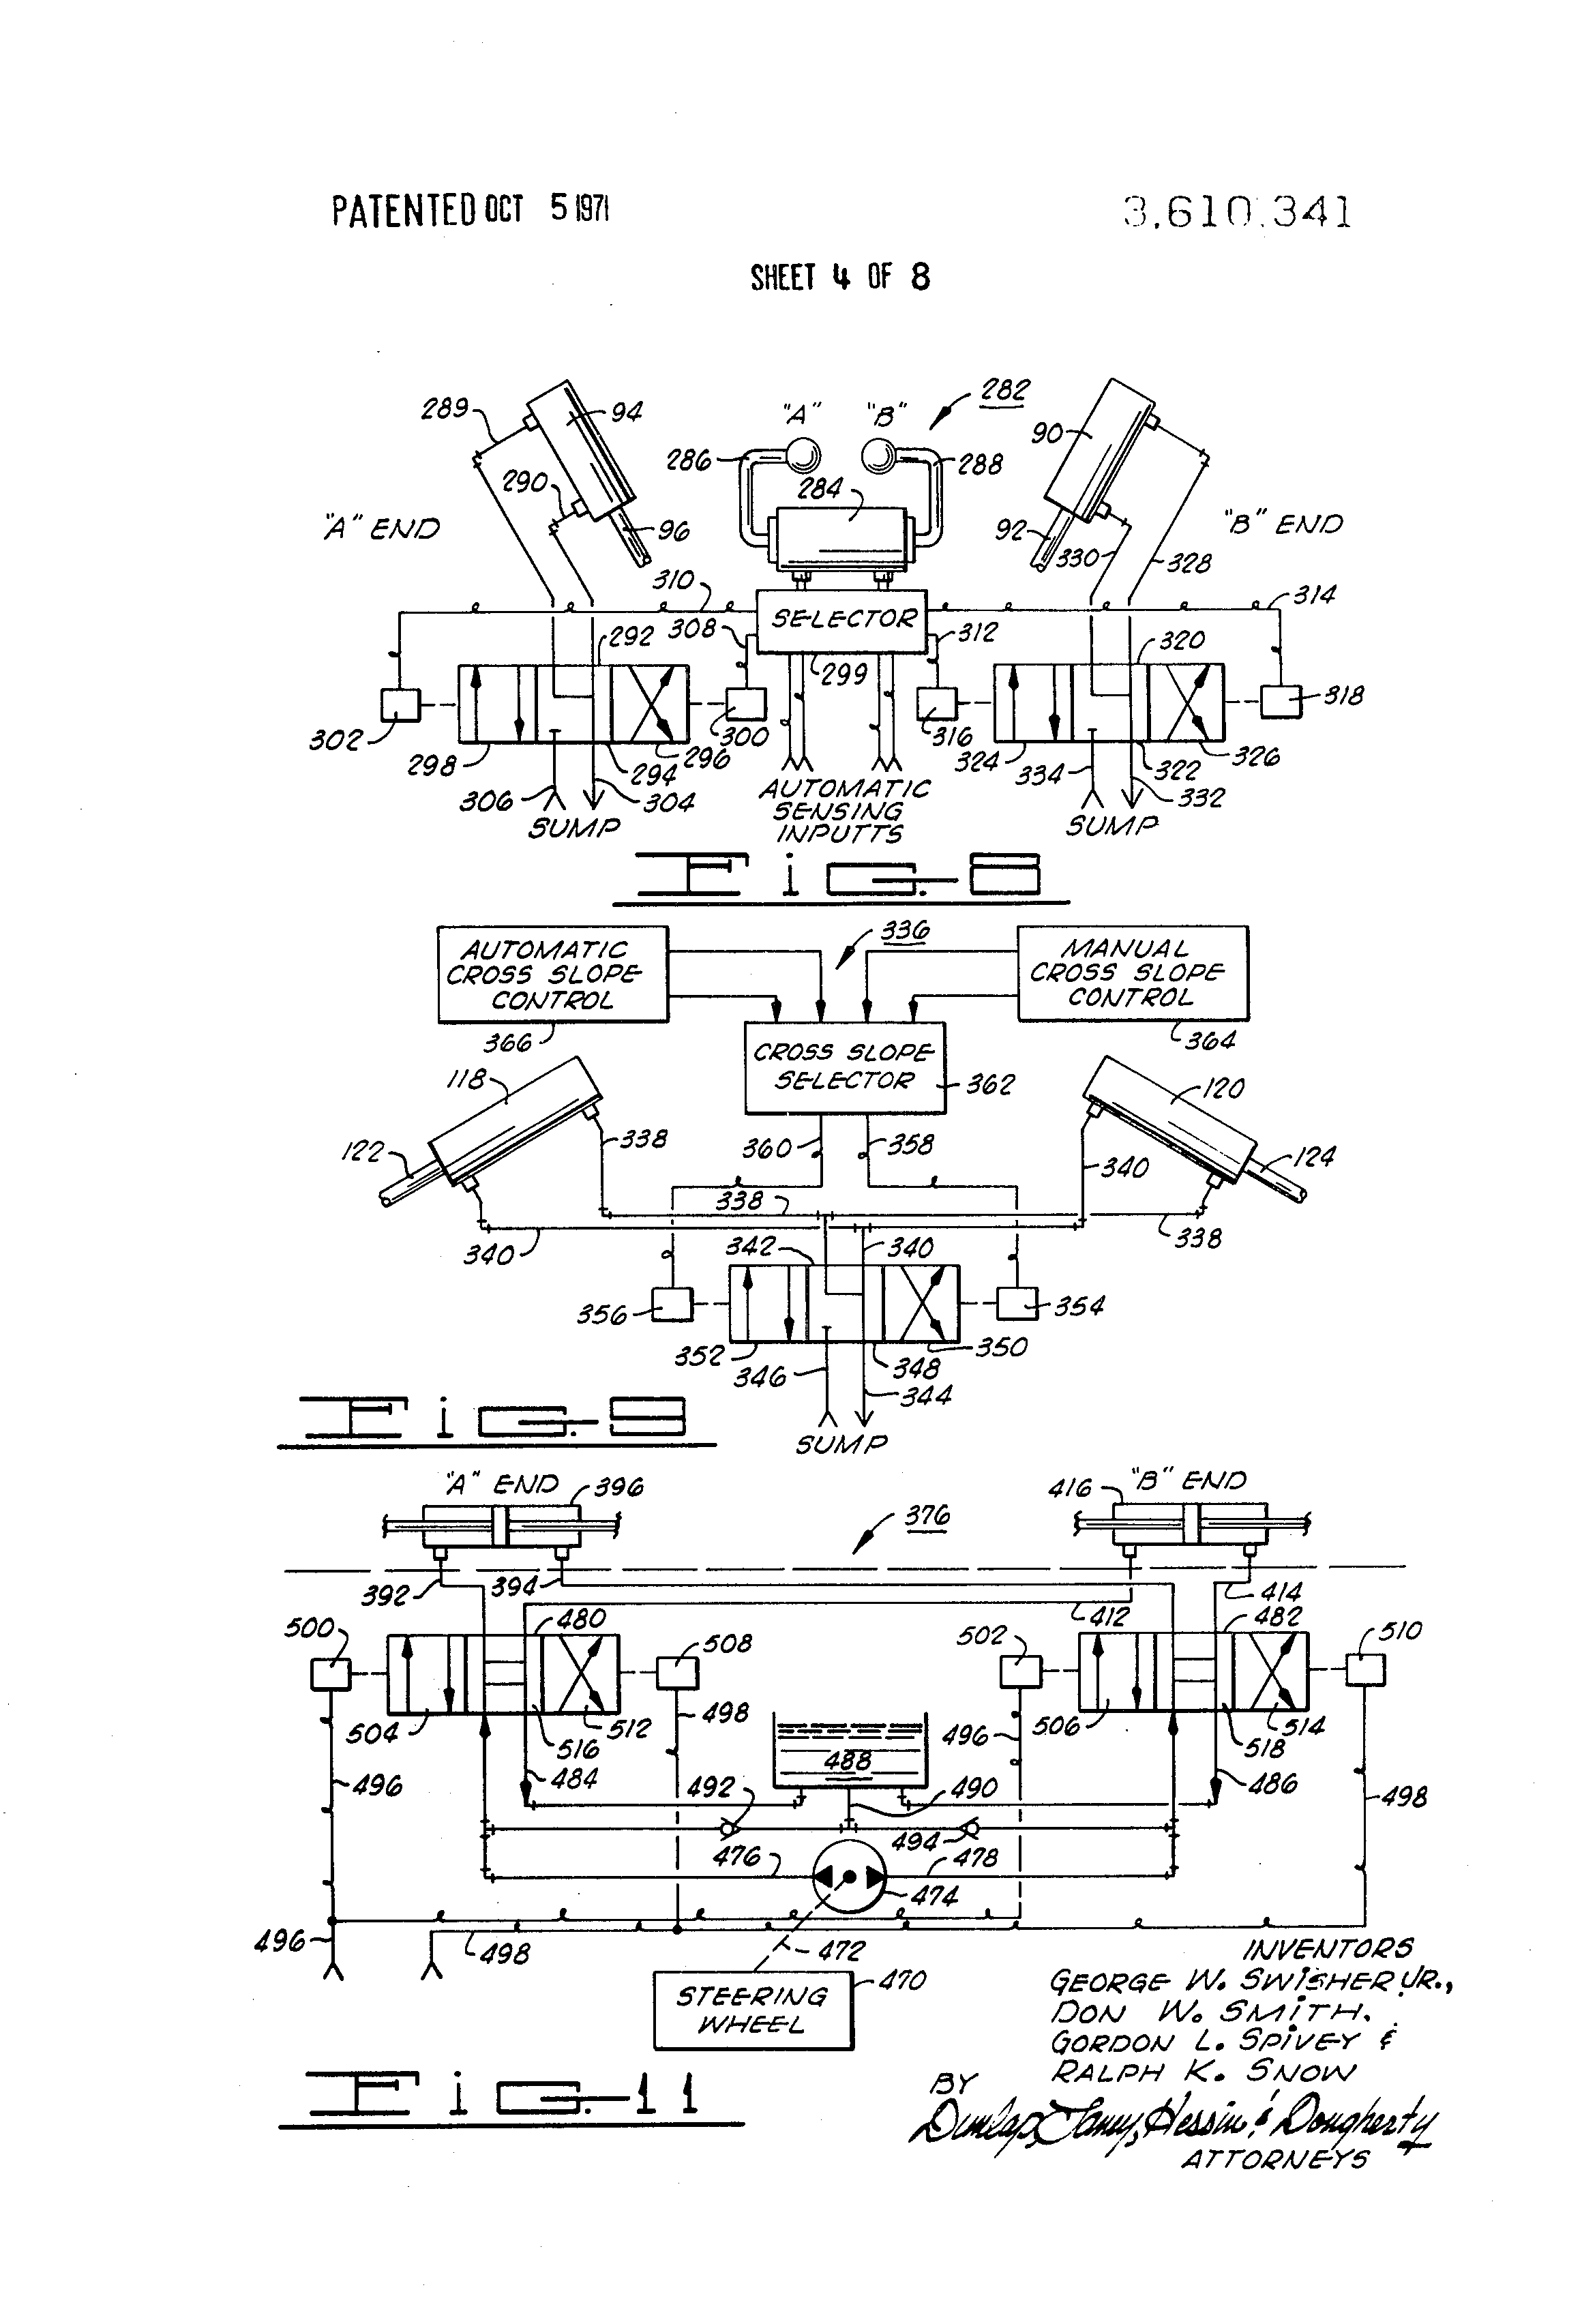 ih 3288 wiring diagram wiring diagram Ih 806 Wiring Diagram